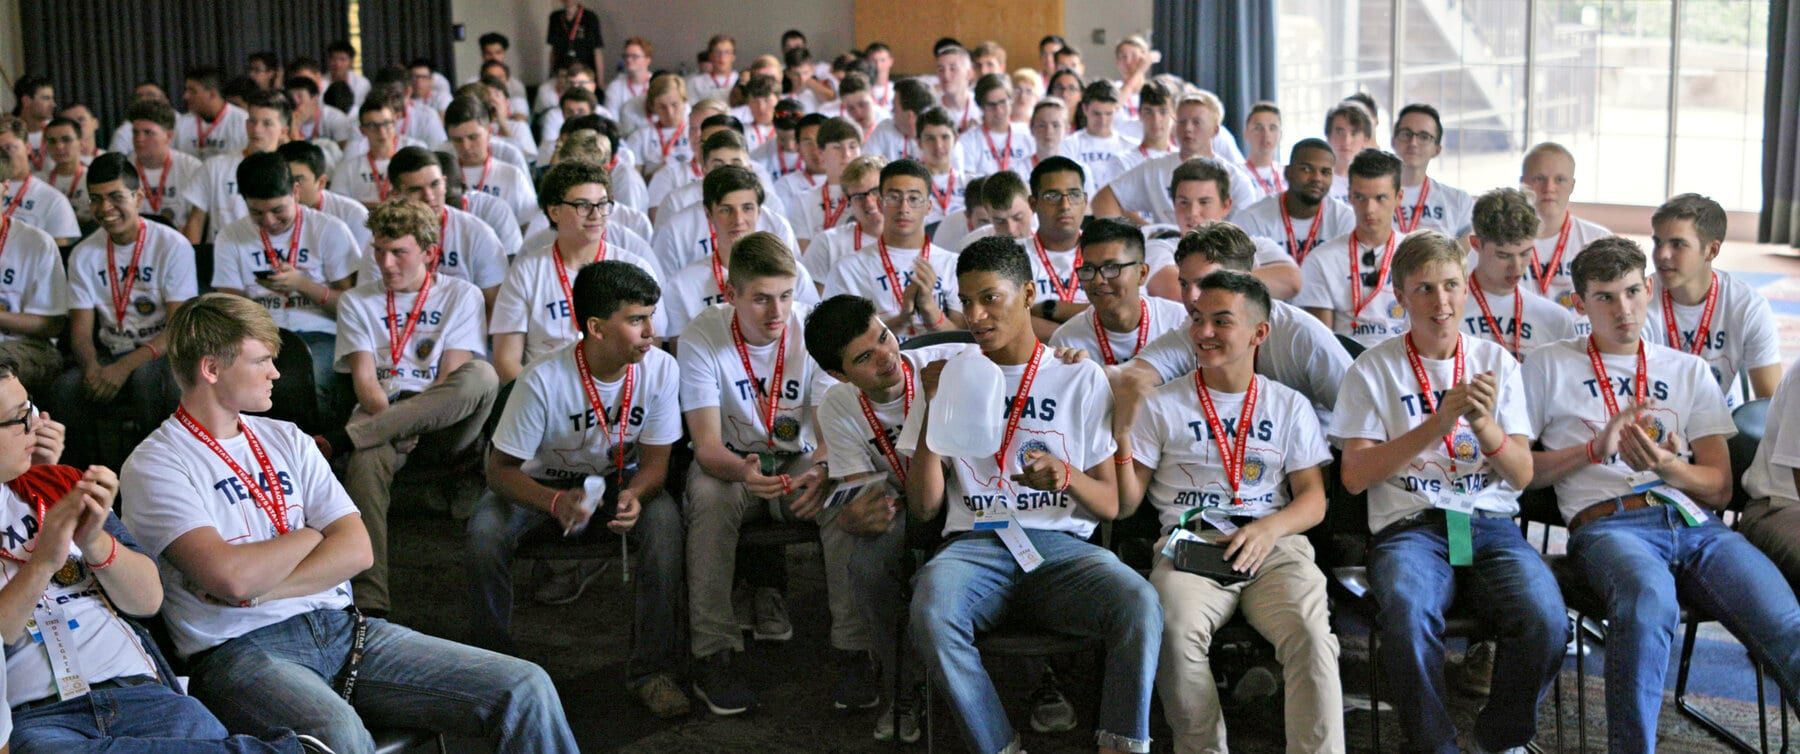 REVIEW: Boys State